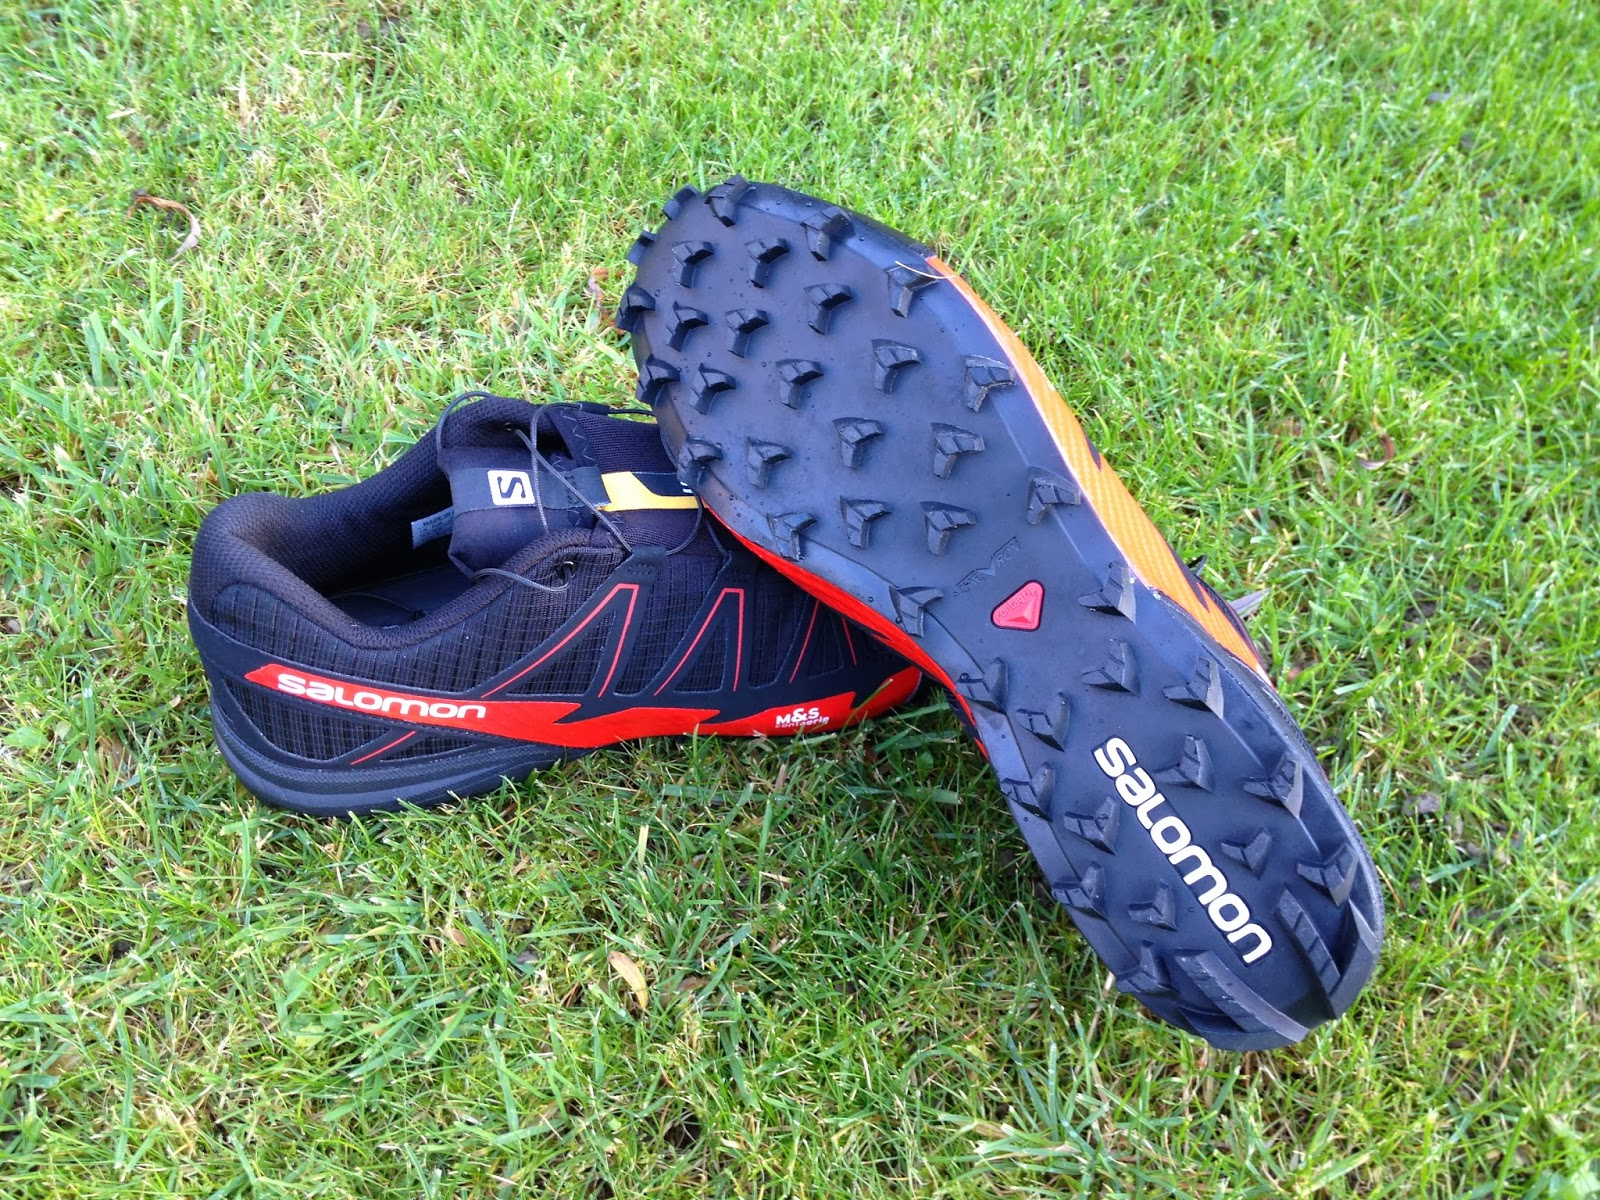 new product 85c67 363fd Over the past few weeks I have had the pleasure of running in the Salomon S-Lab  Fellcross 2, and I have had some serious fun in them.